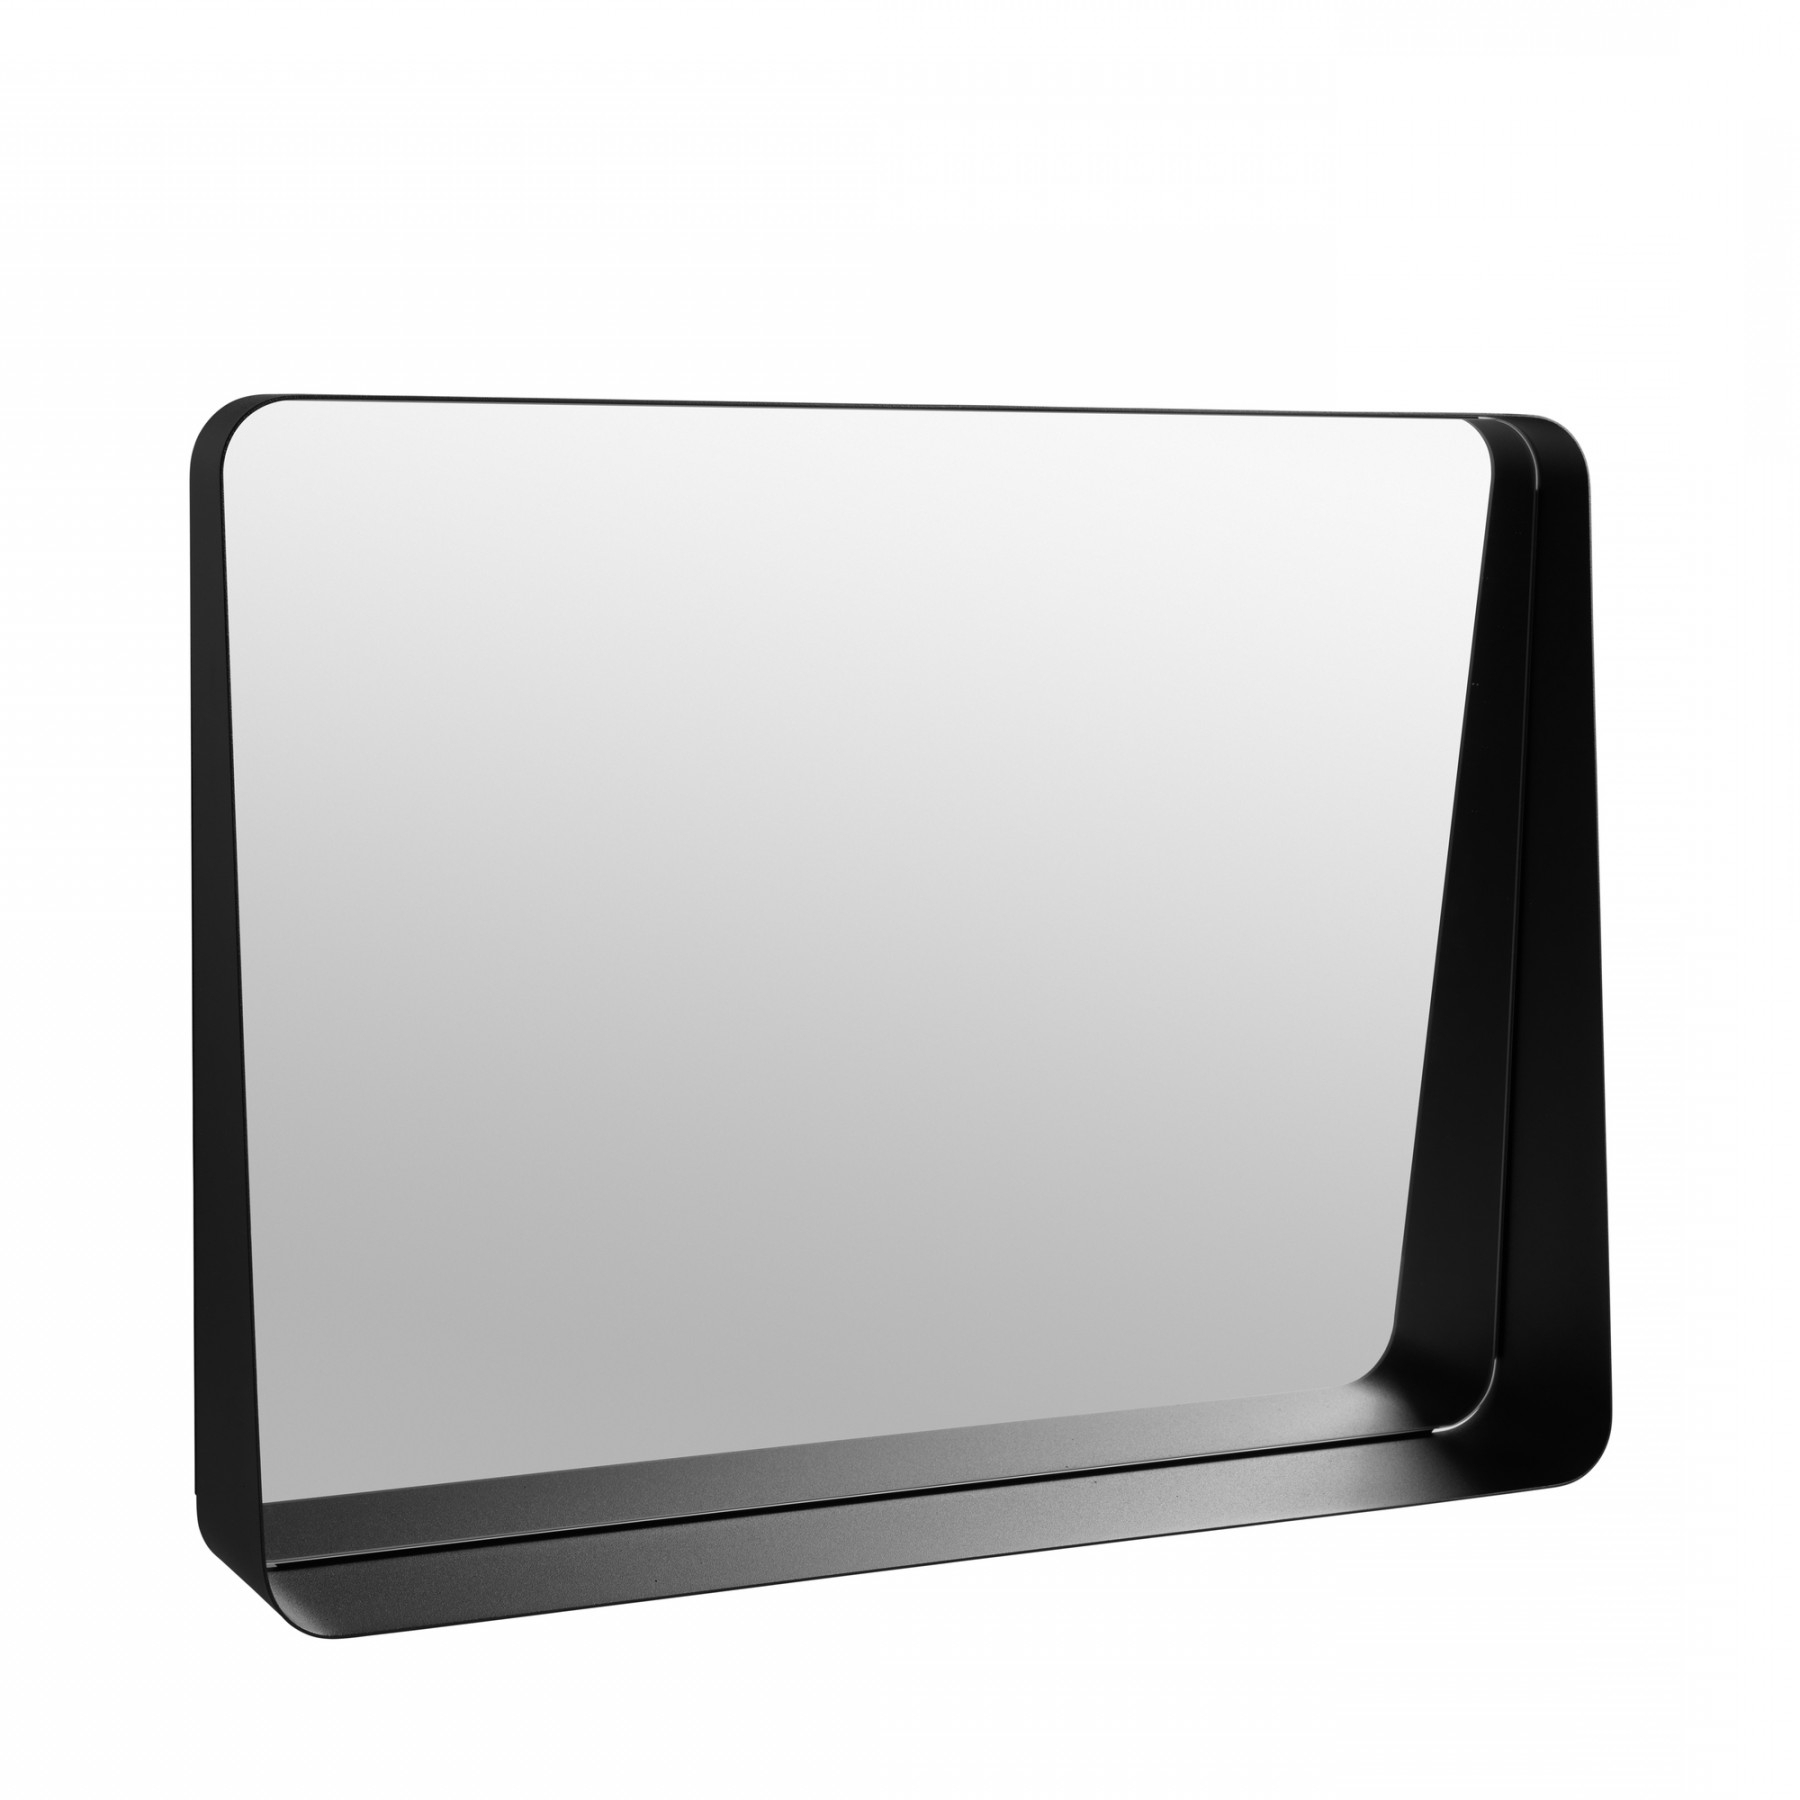 Arco Wall Mirror Horizontal Blomus Throughout Trendy Horizontal Wall Mirrors (Gallery 13 of 20)